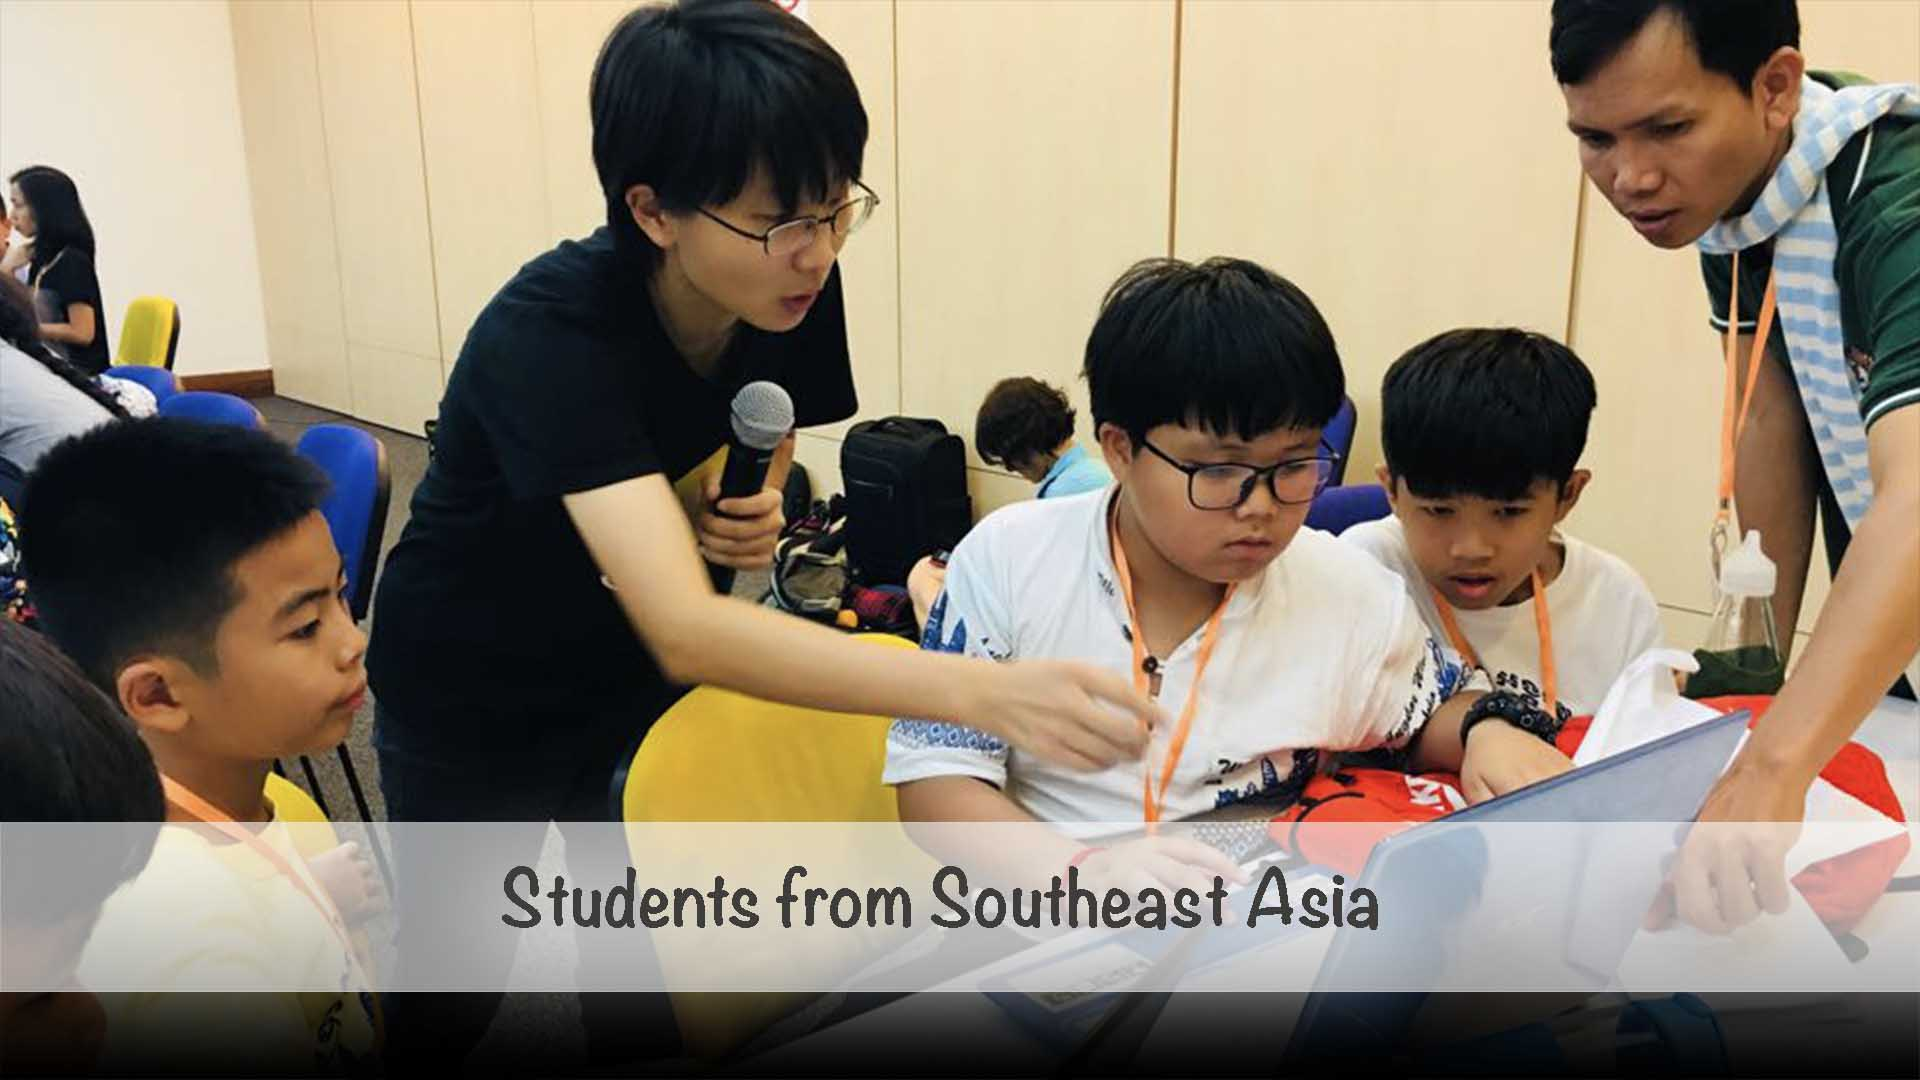 AR VR Workshop for Schools from Southeast Asia